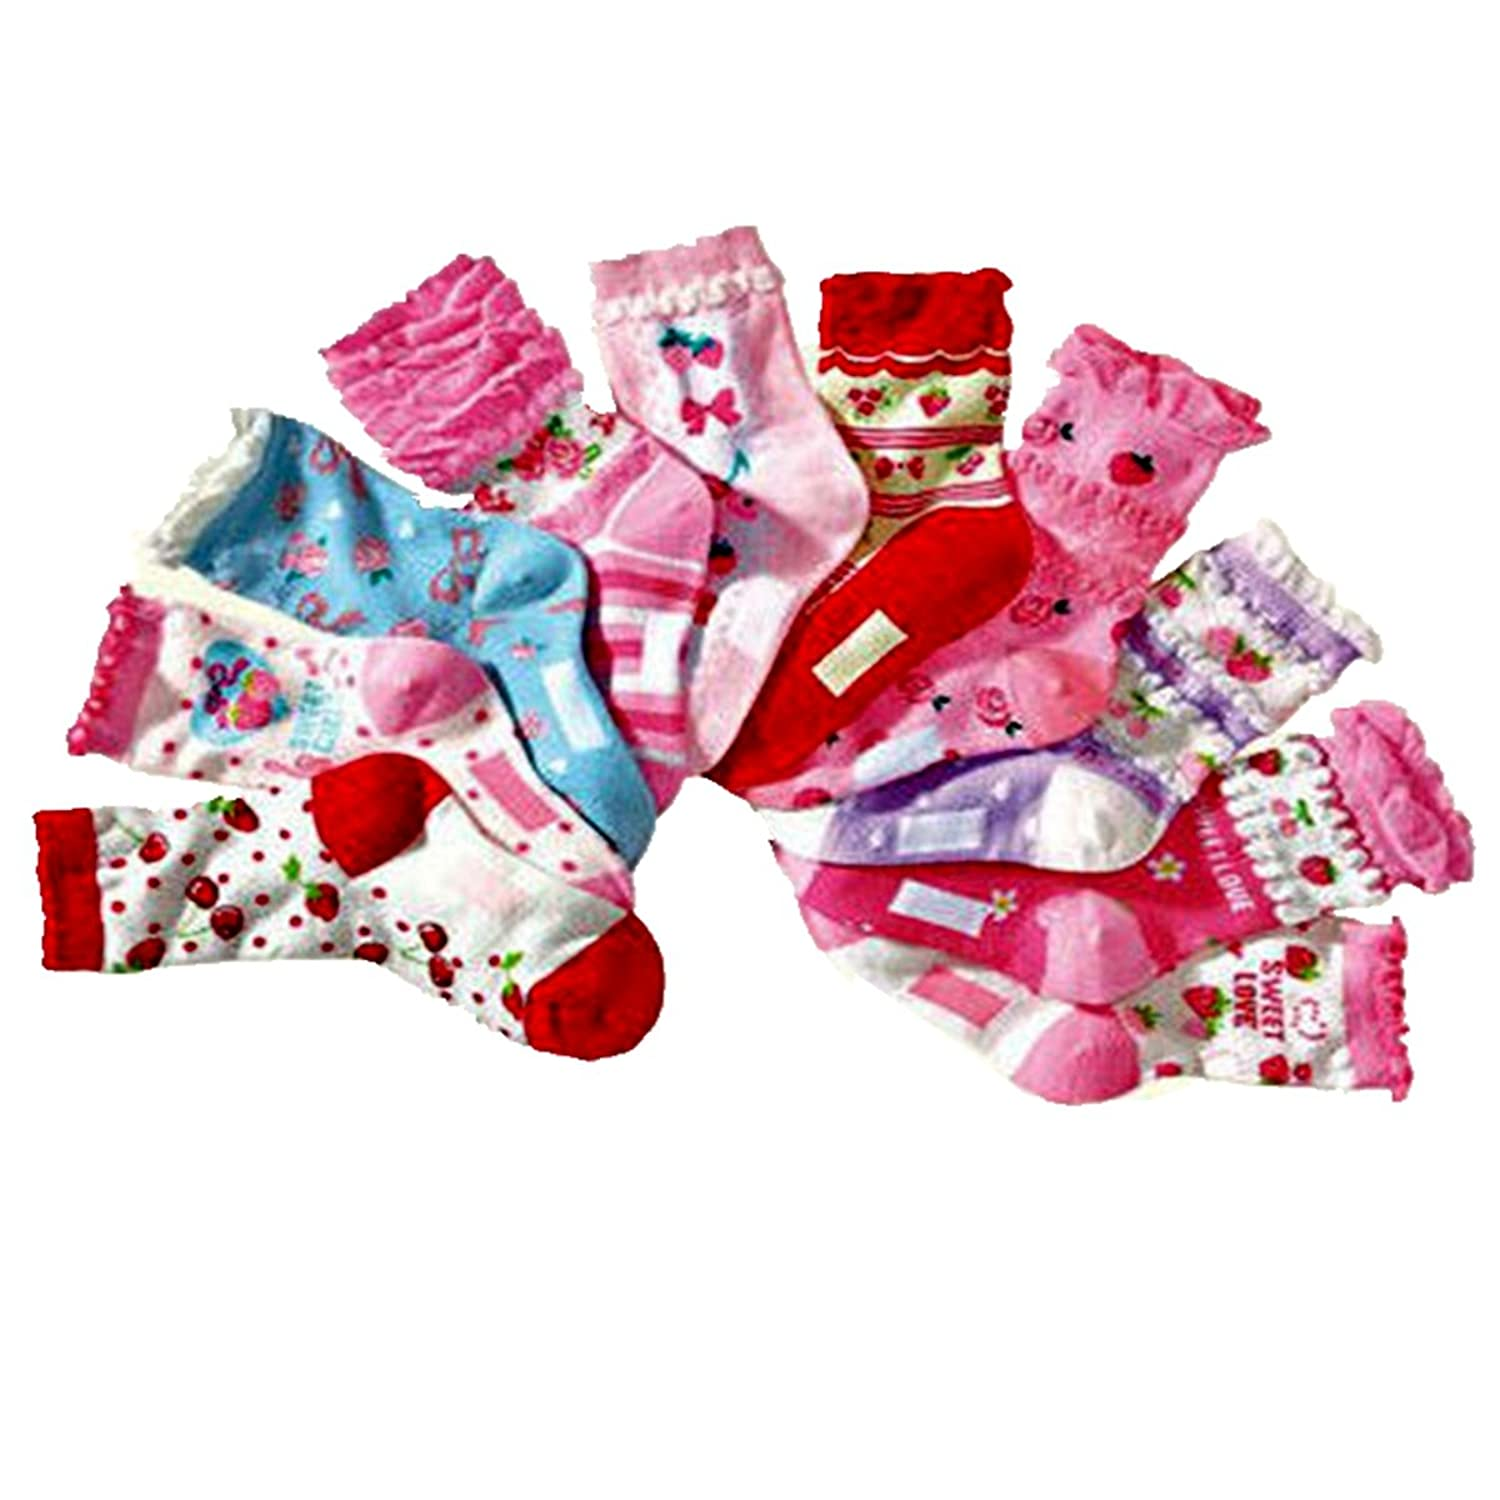 Indistar Girls Super Soft and Stylish Cotton Printed Churidar Legging Pants Pack of 2